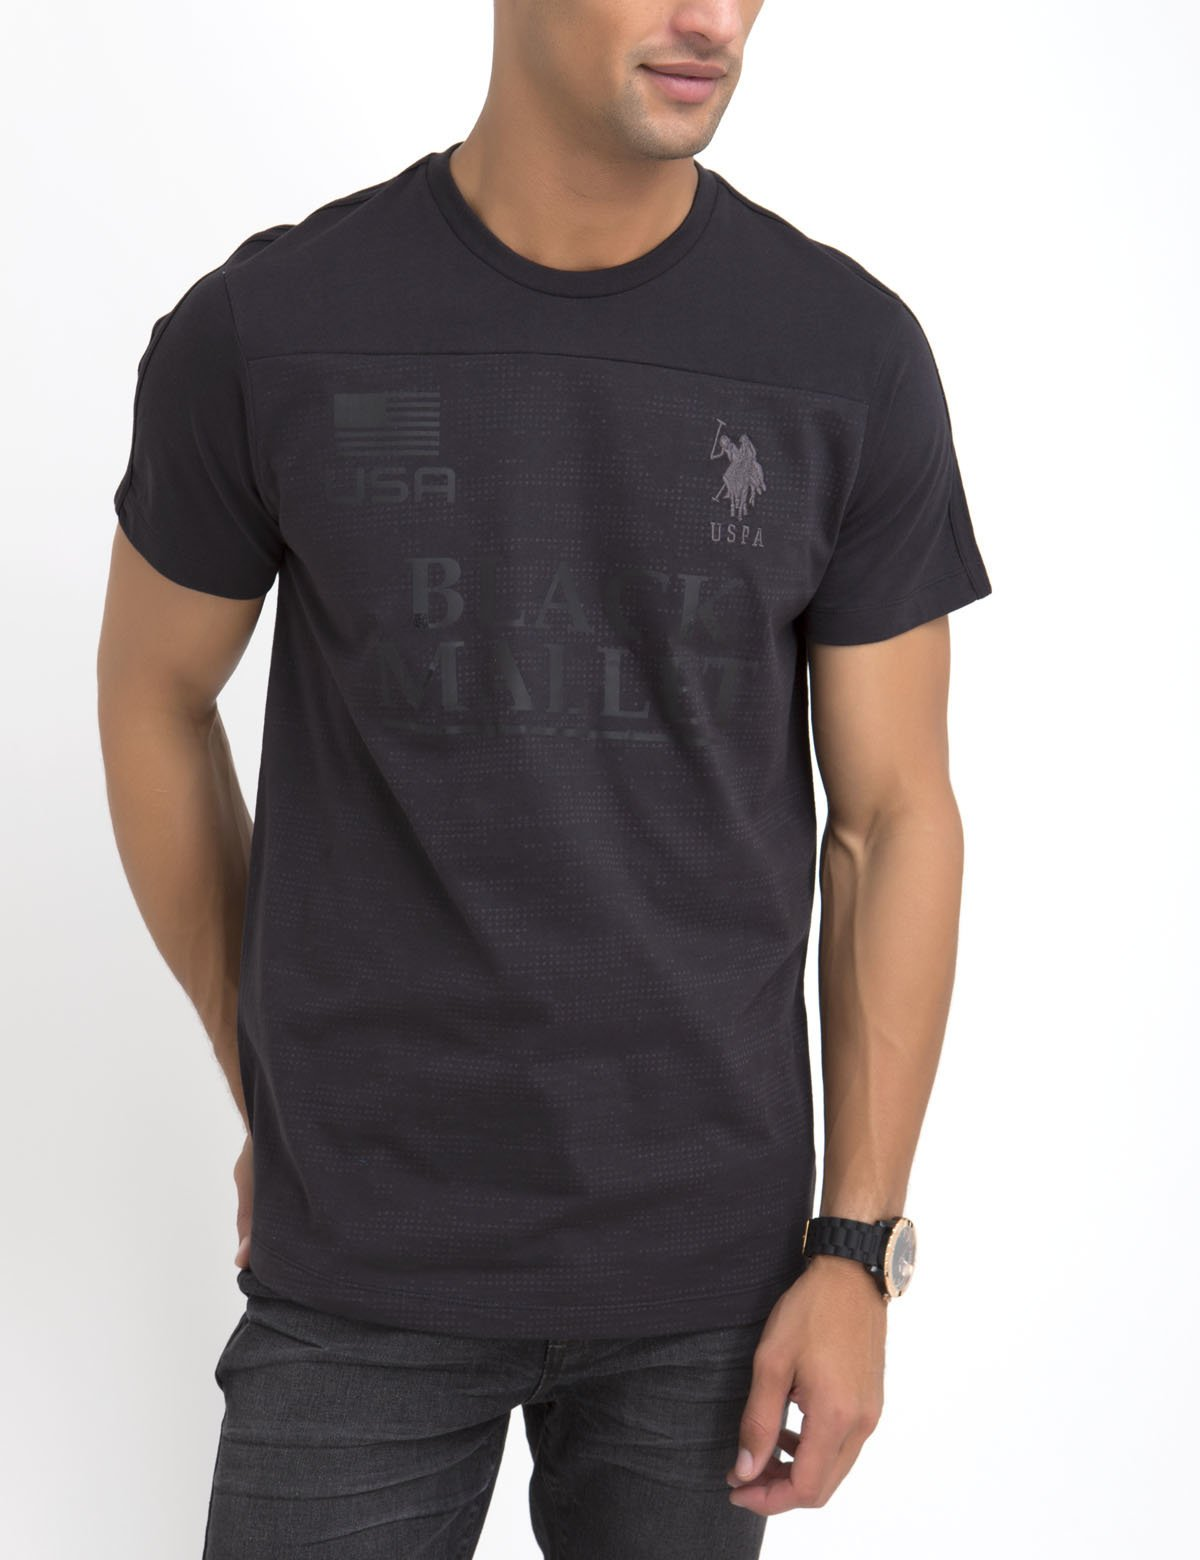 BLACK MALLET BURNOUT CAMO SHORT SLEEVE T-SHIRT - U.S. Polo Assn.